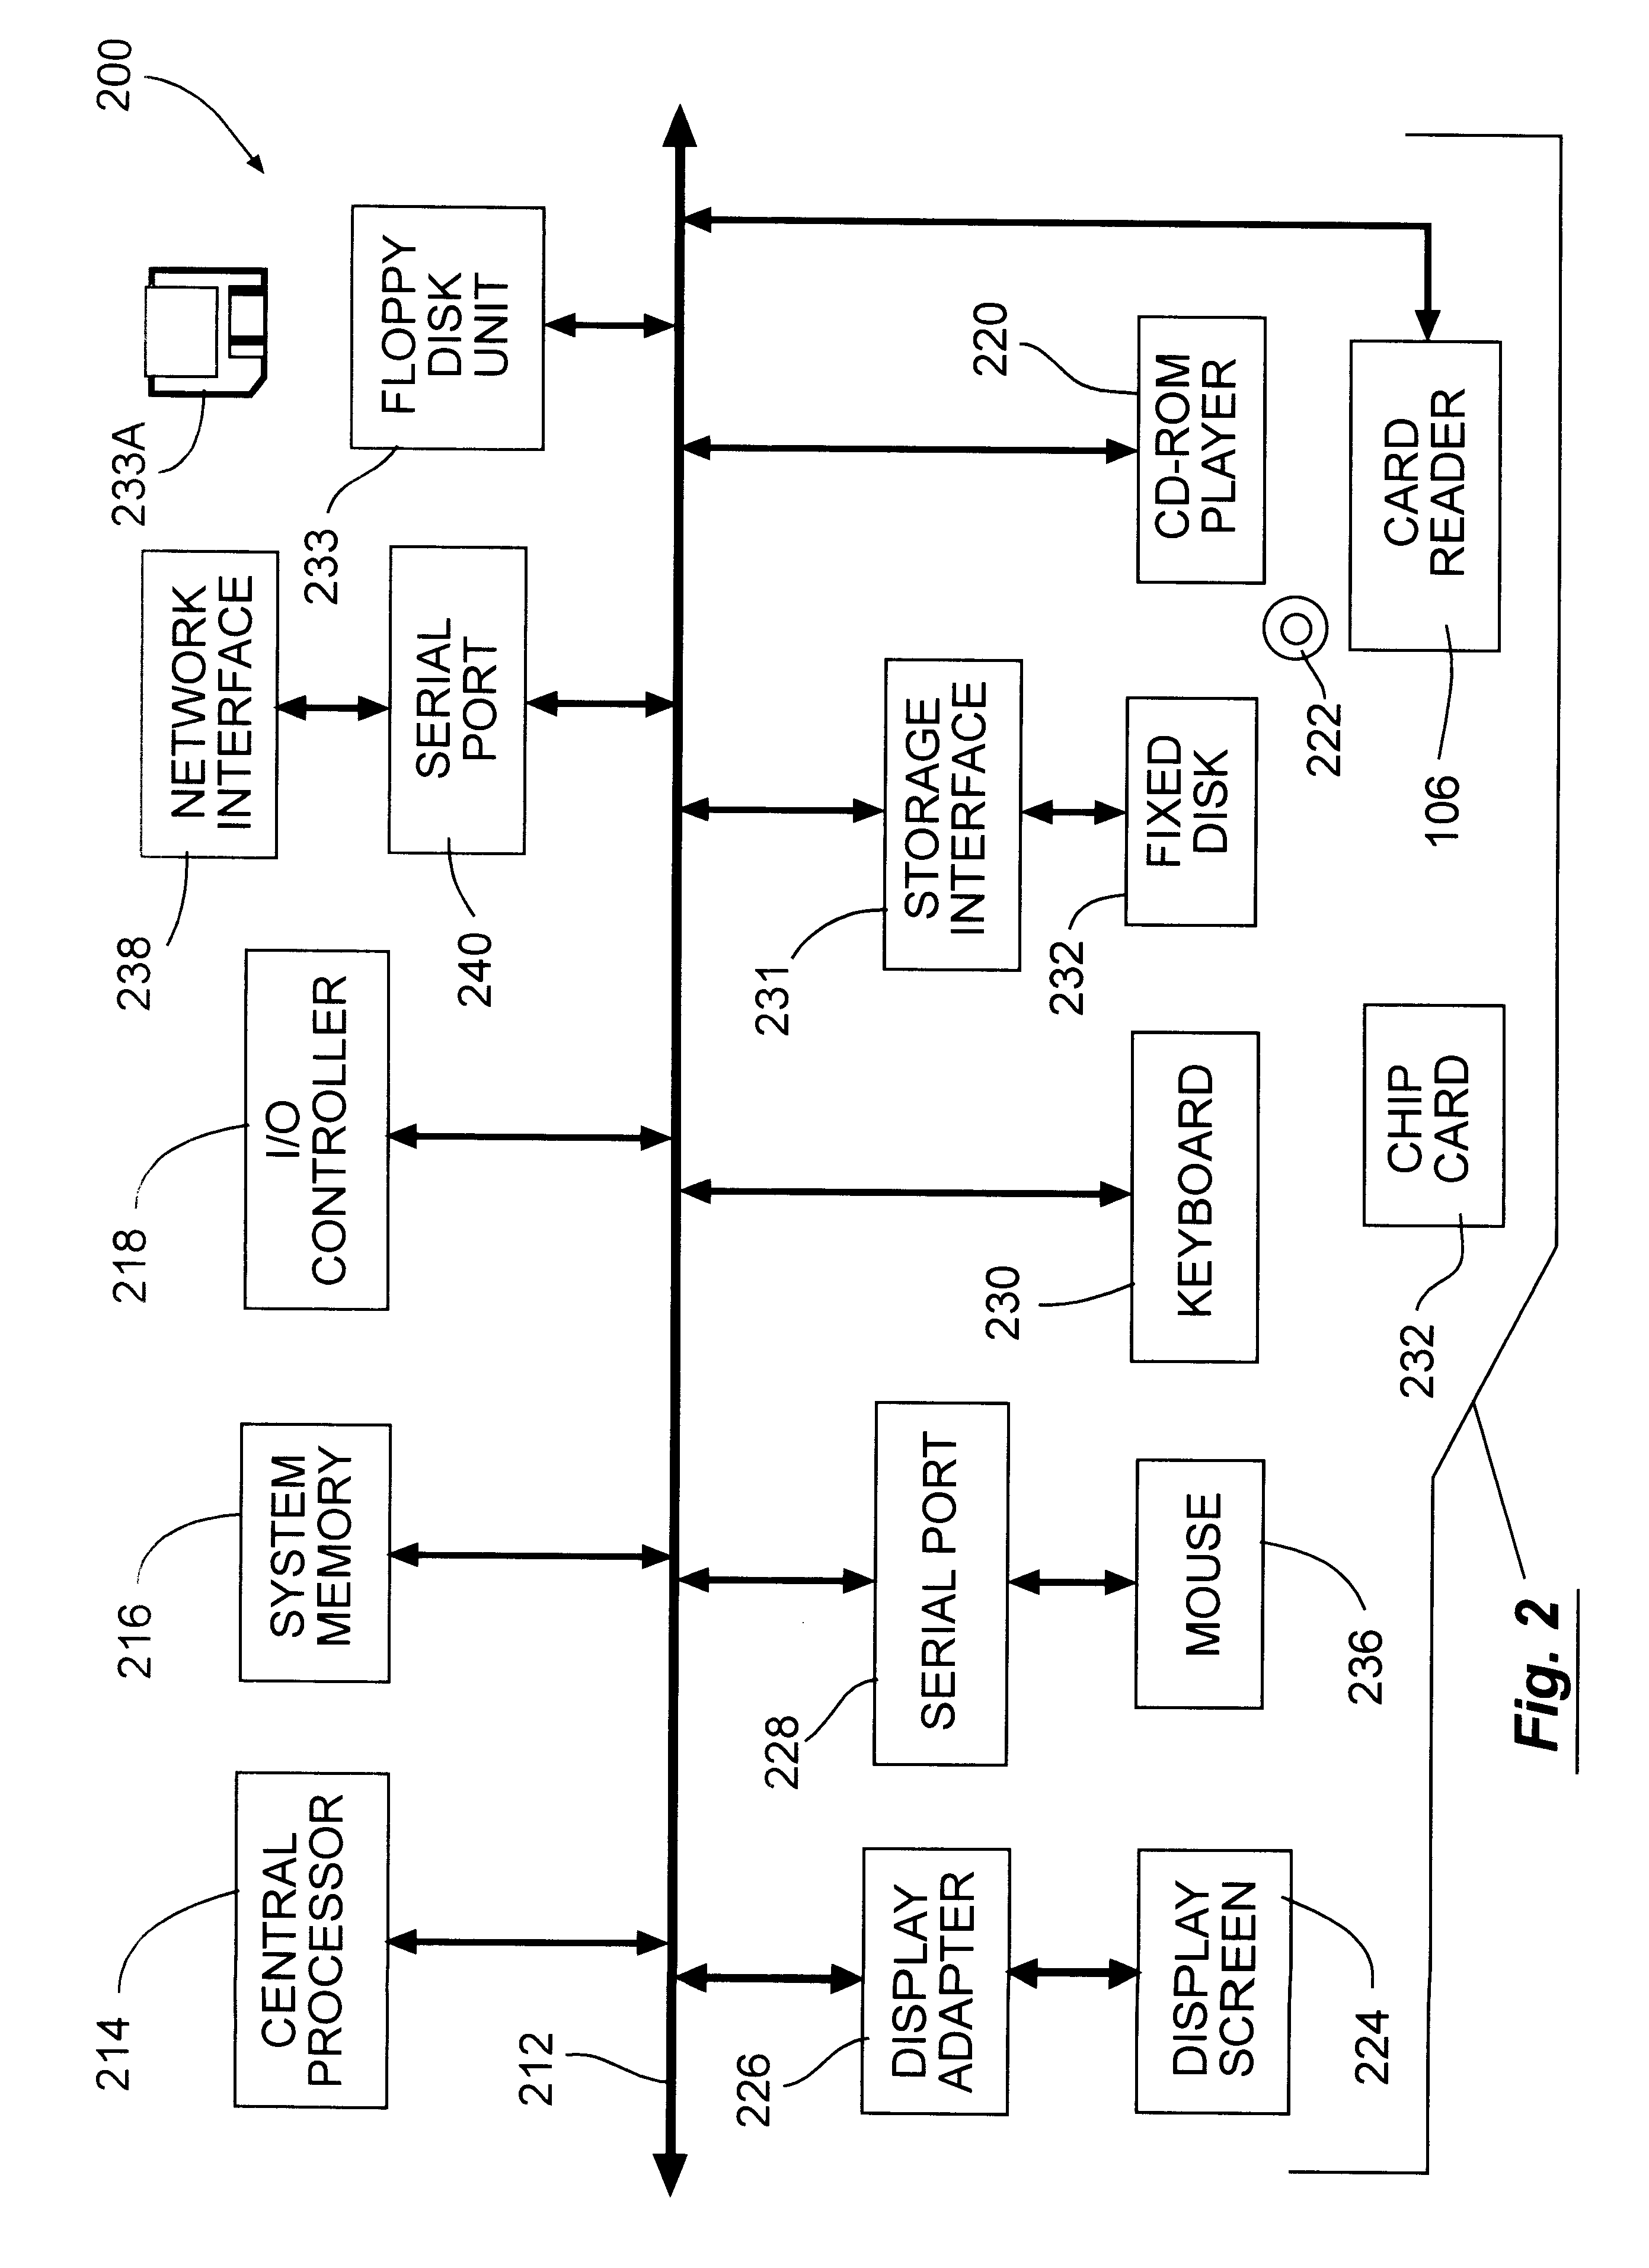 patent us6247129 - secure electronic commerce employing integrated circuit cards